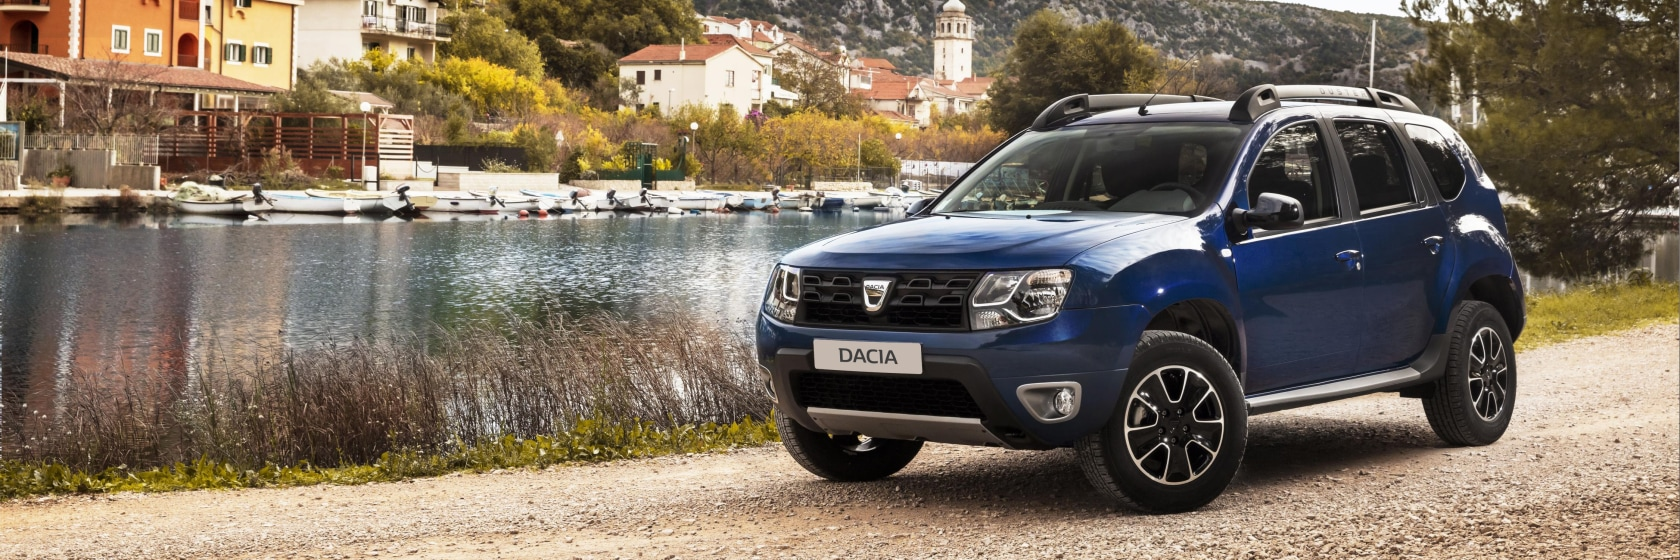 100 duster dacia will the new renault dacia duster look like this perhaps perhaps dacia. Black Bedroom Furniture Sets. Home Design Ideas